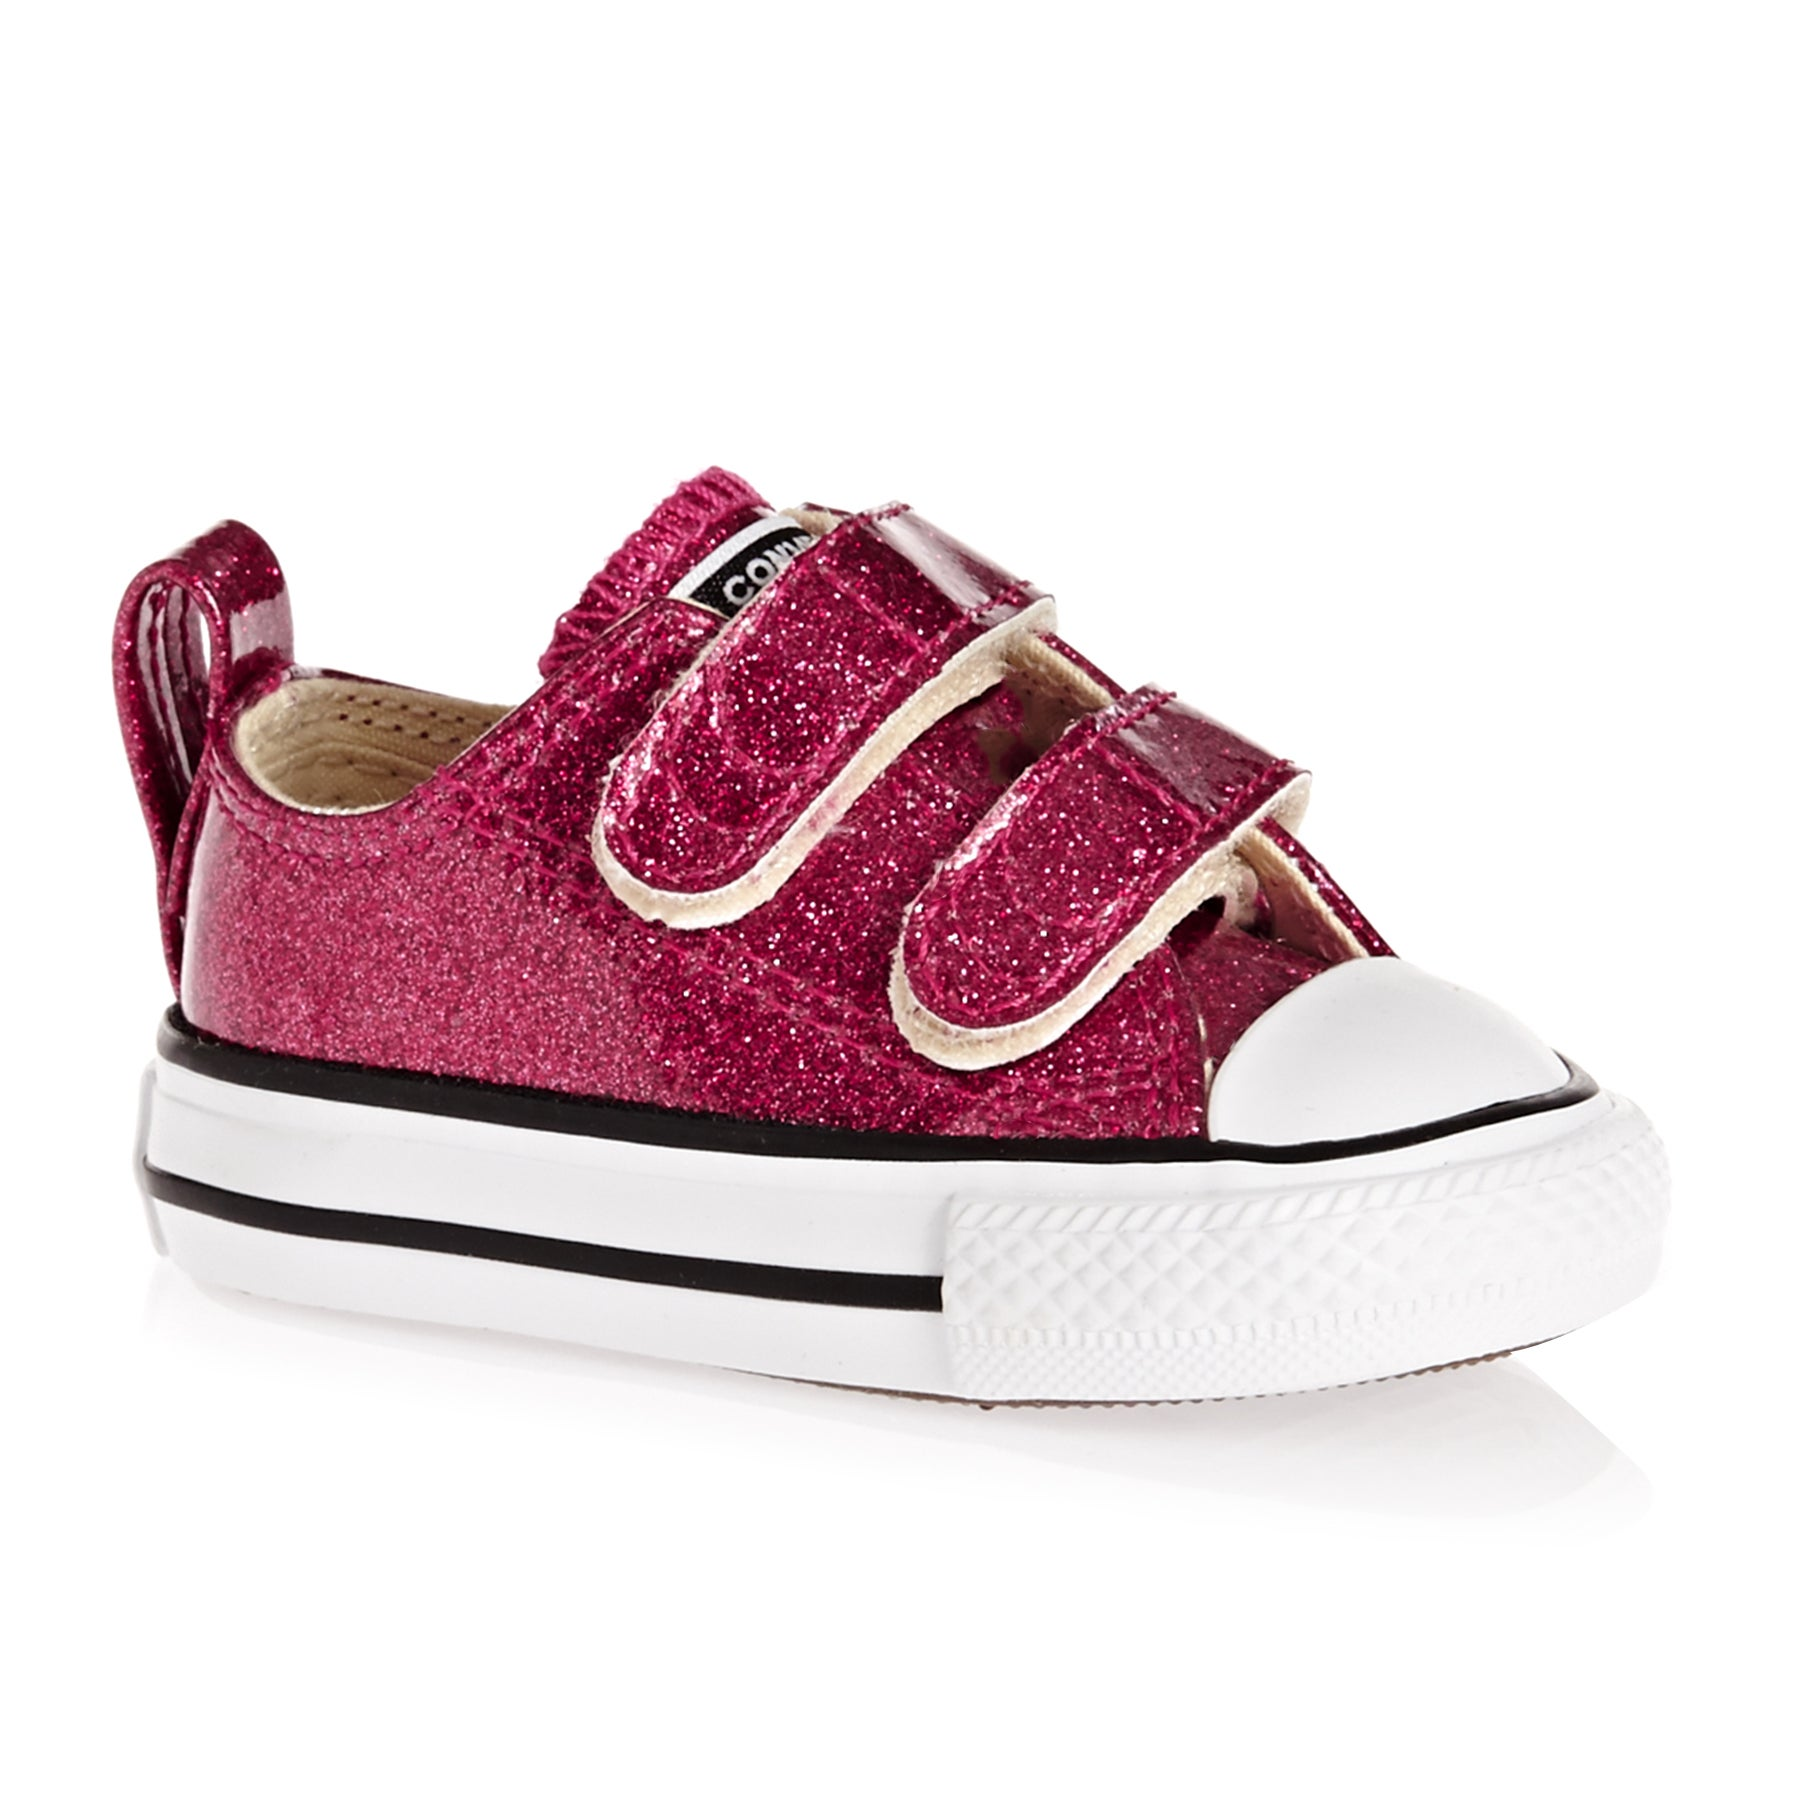 Converse Chuck Taylor All Star 2v Ox Glitter Baby Shoes - Pink Pop/natural/white